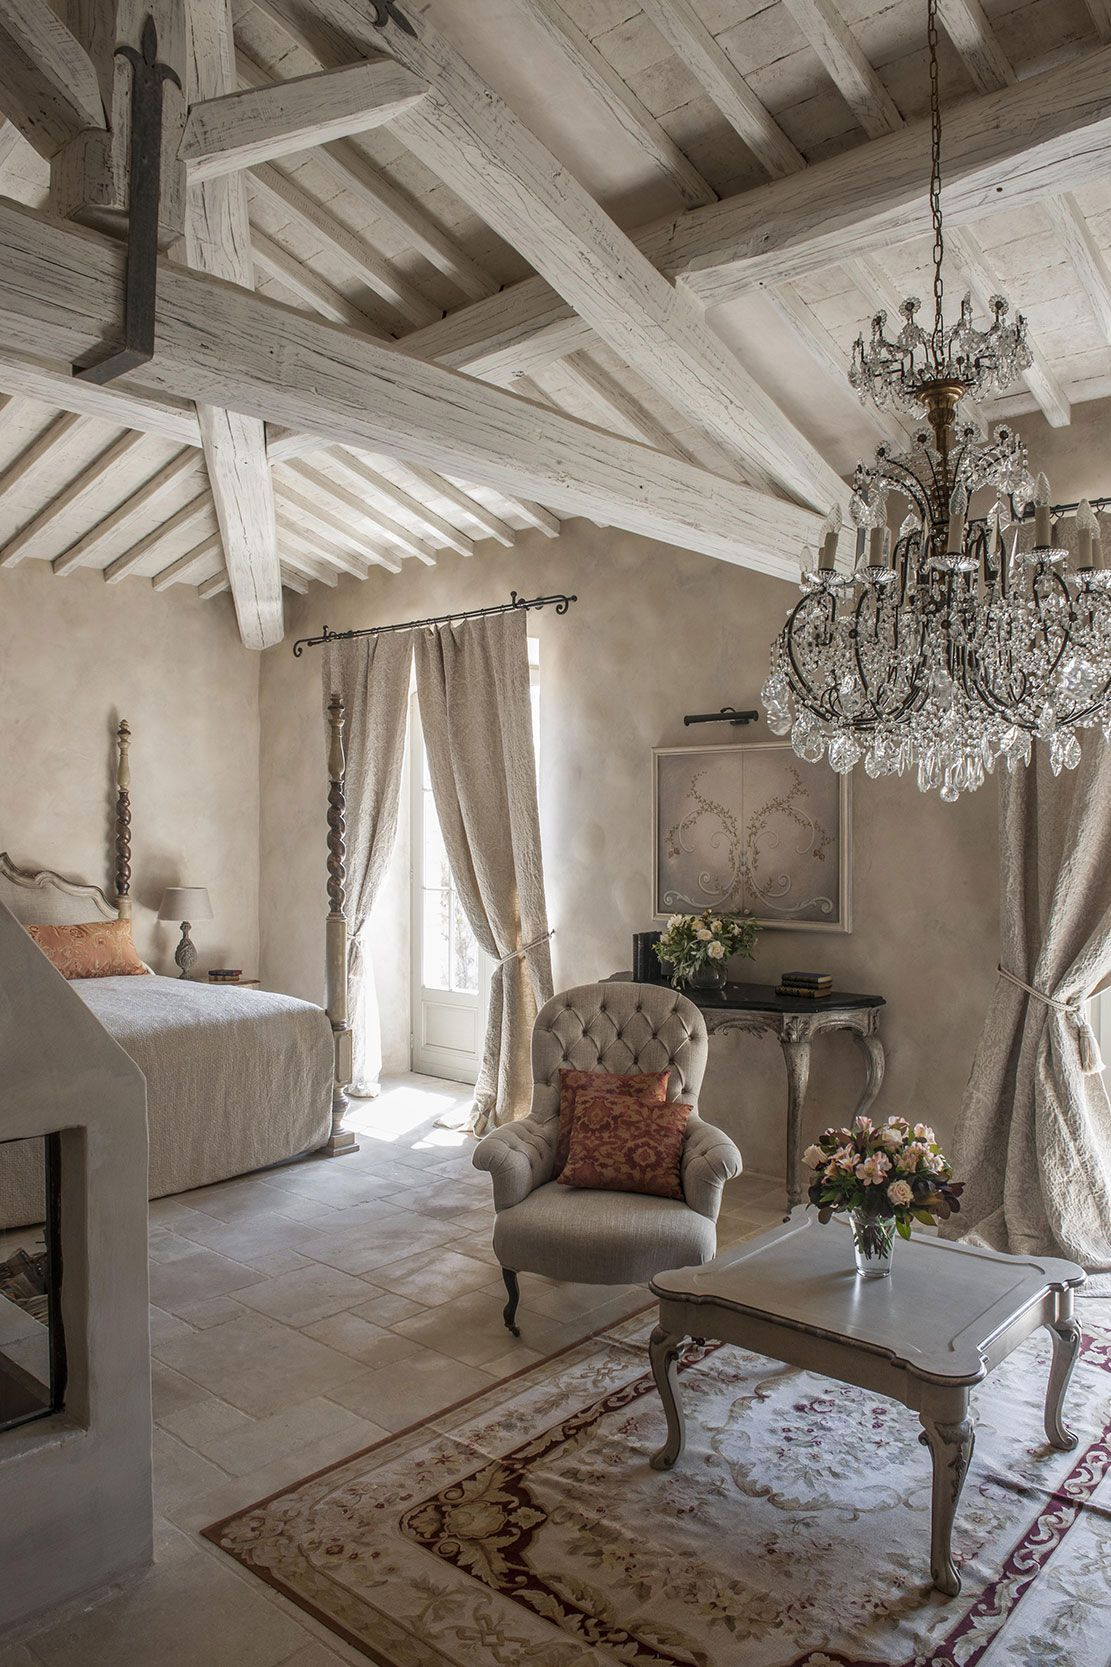 10 Tips for Creating The Most Relaxing French Country ...